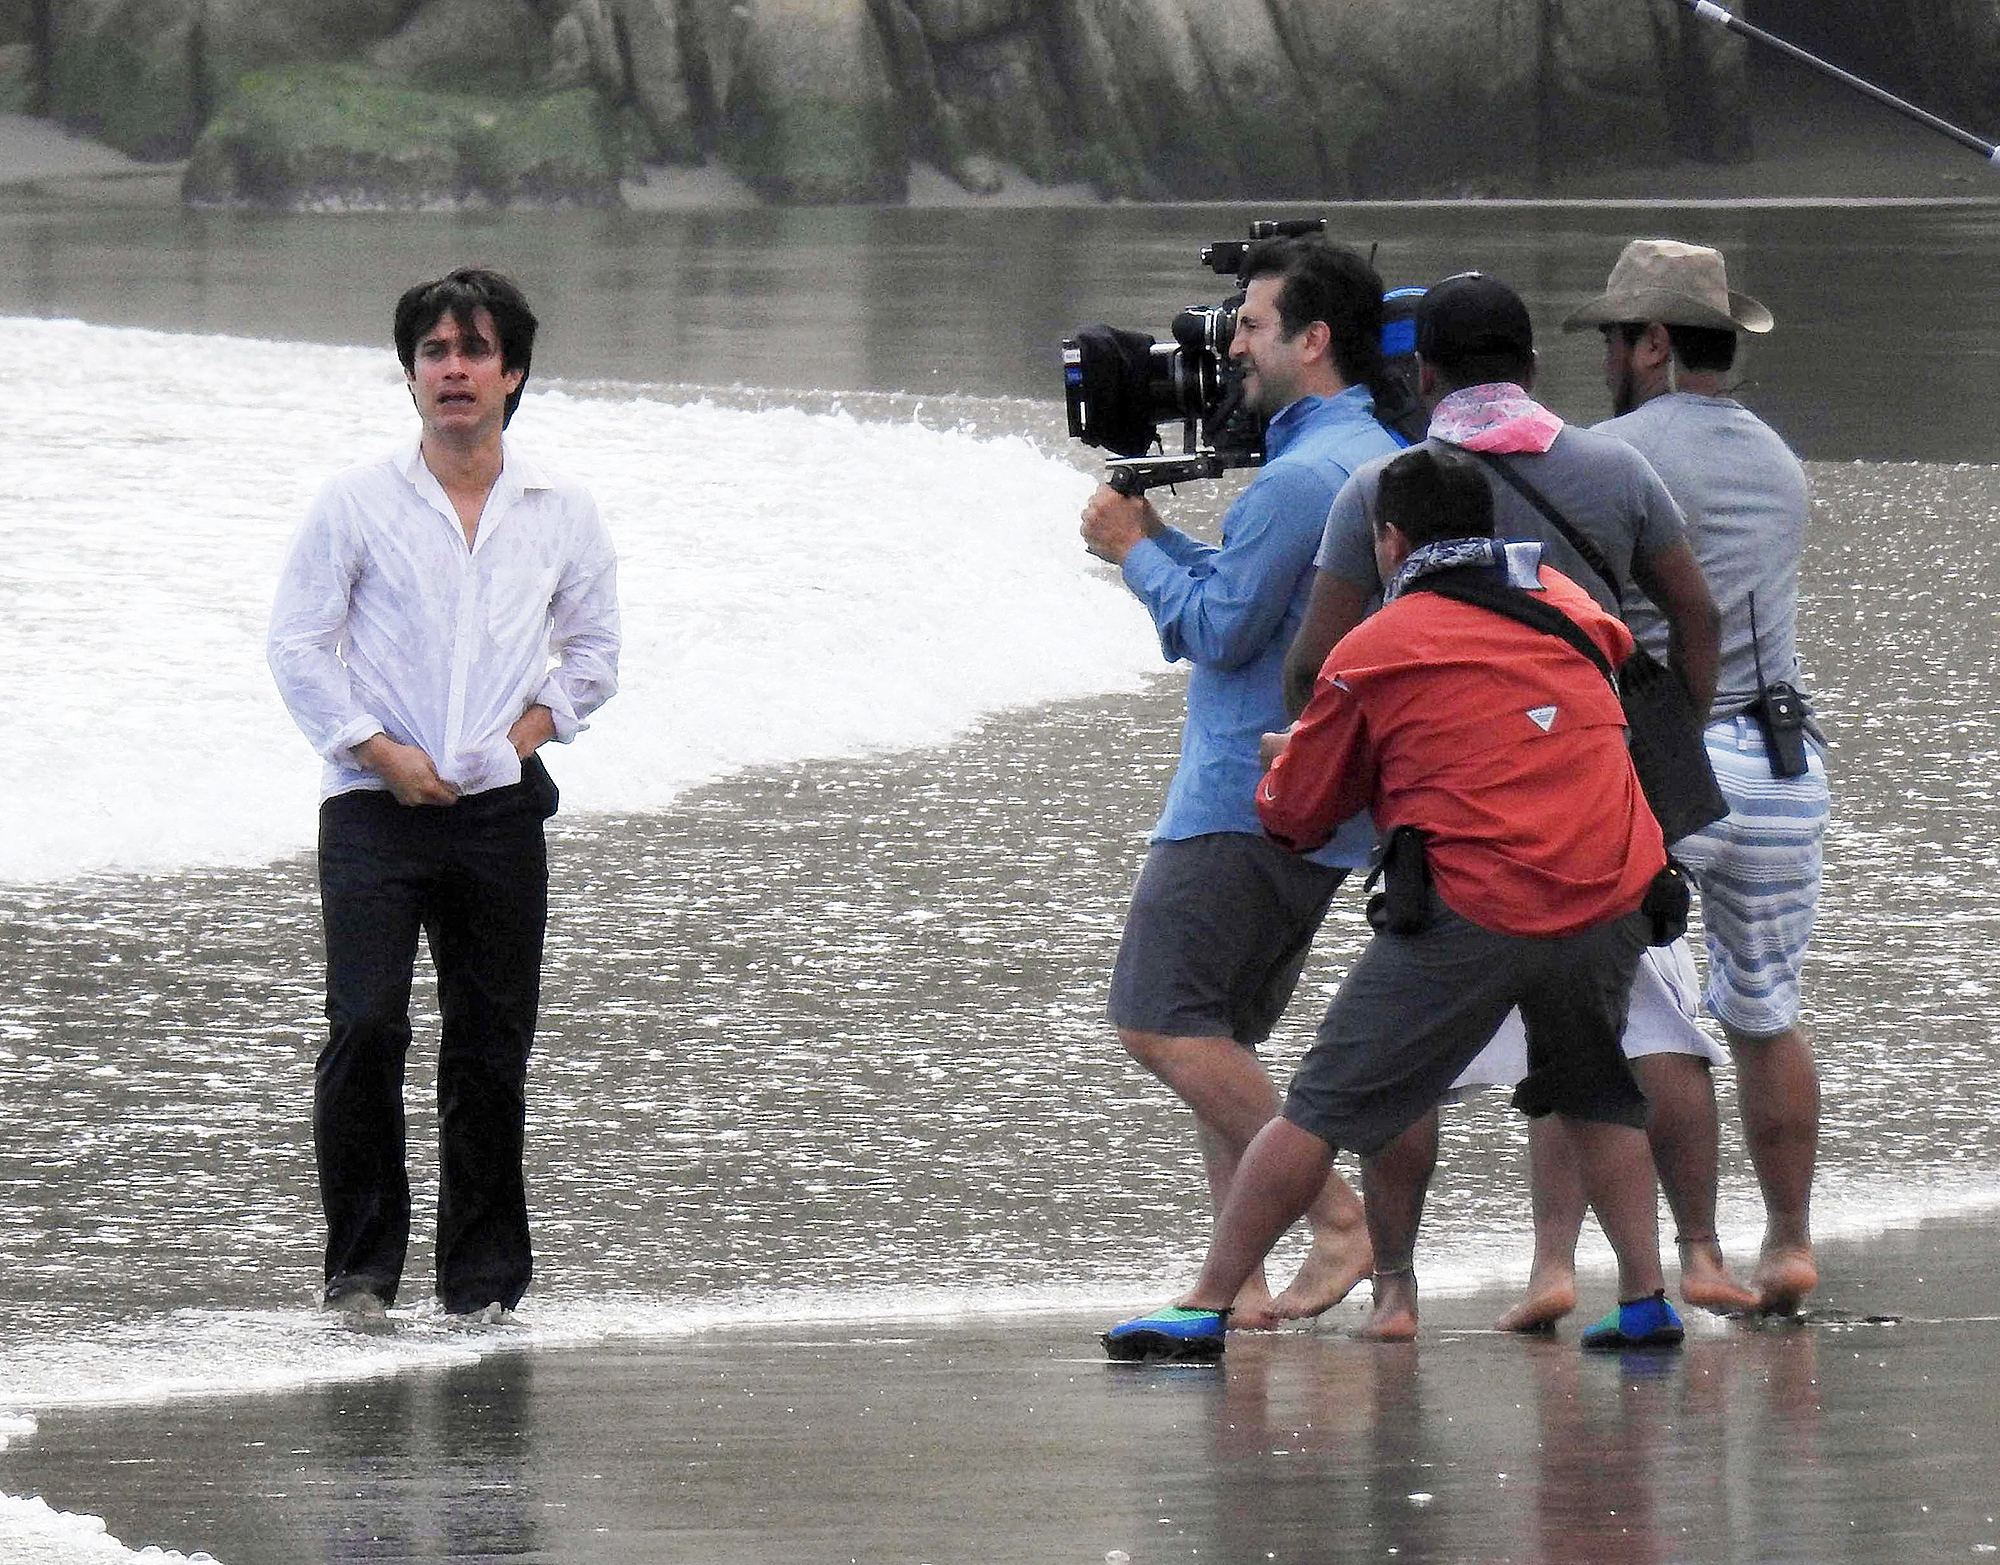 EXCLUSIVE: Mexican actor Gael Garcia Bernal shooting scenes for his new movie 'Museo' by director Alonso Ruizpalacios on the beach in Acapulco